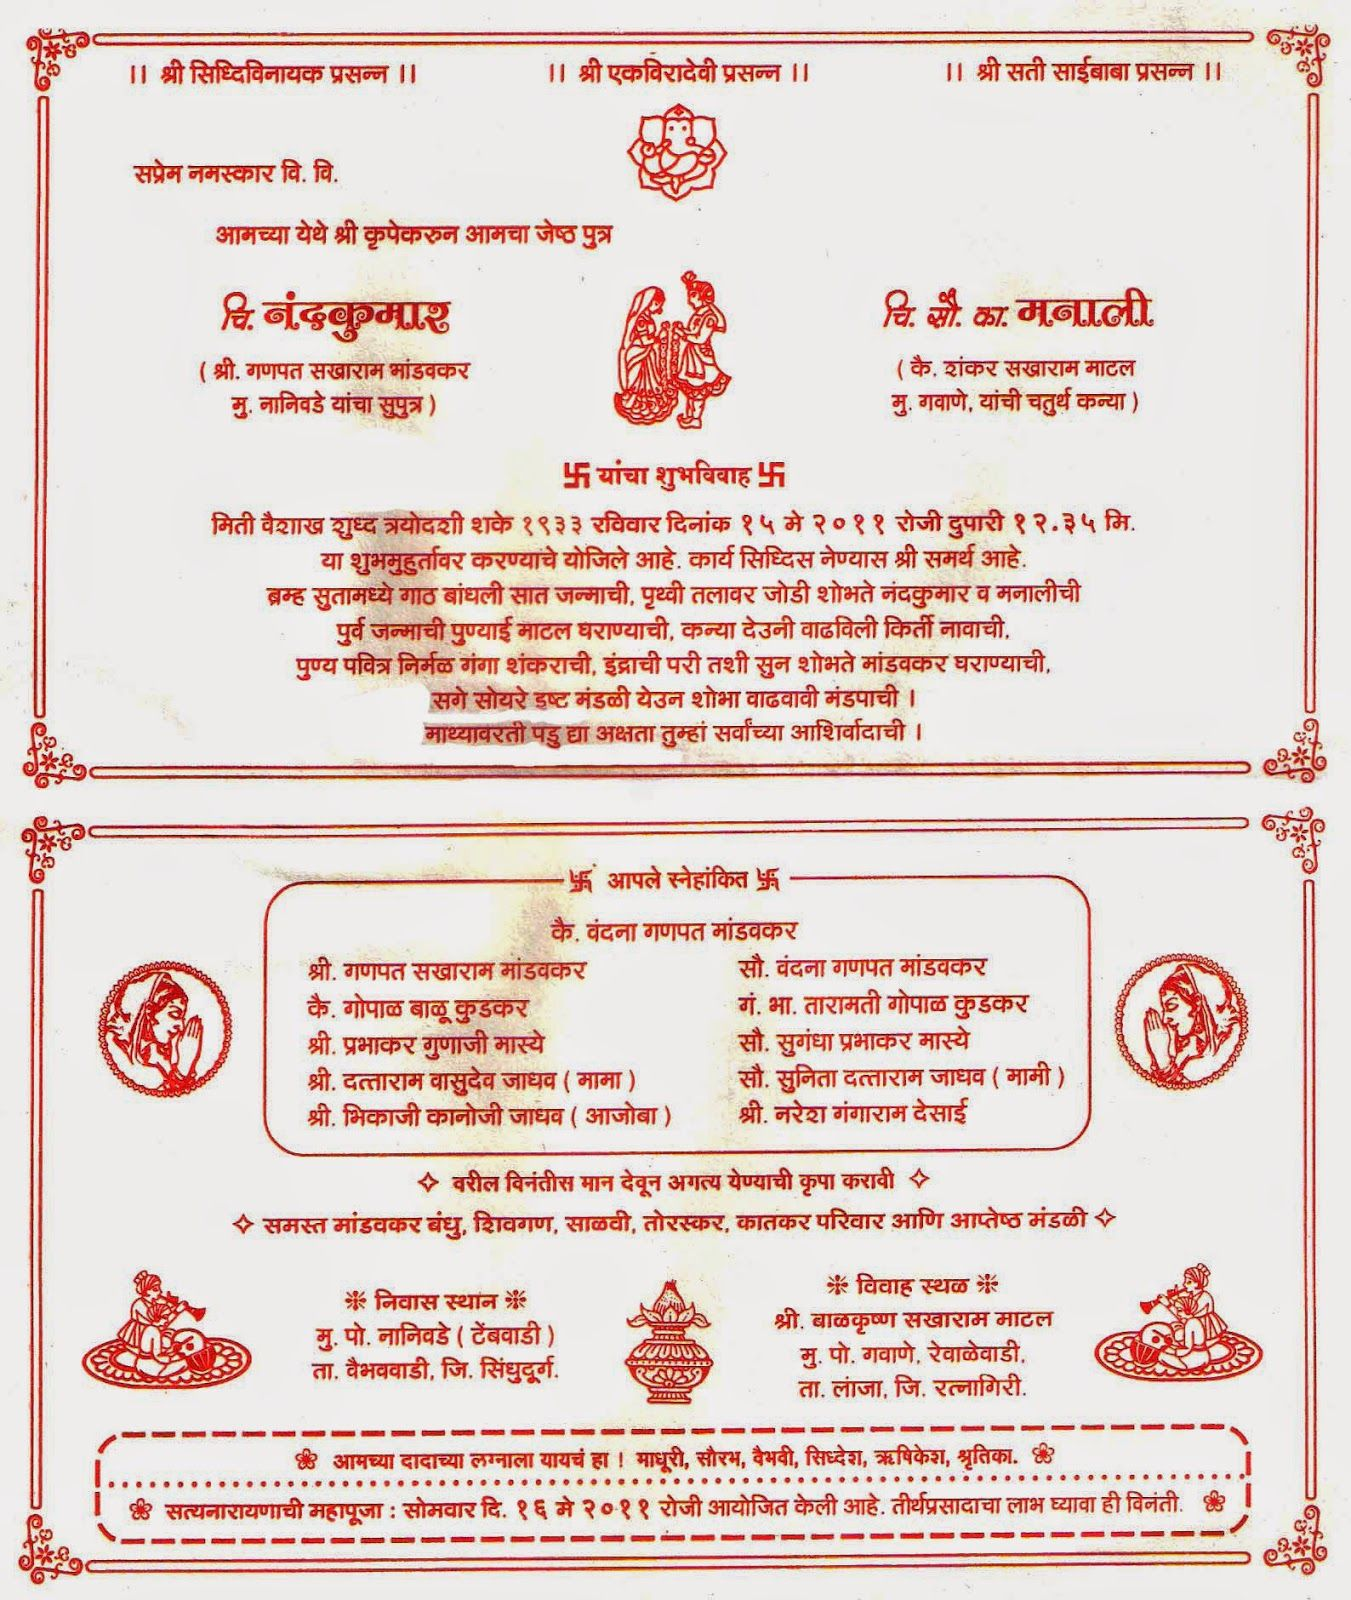 Hindu Wedding Invitation Quotes In Marathi Fresh Marathi